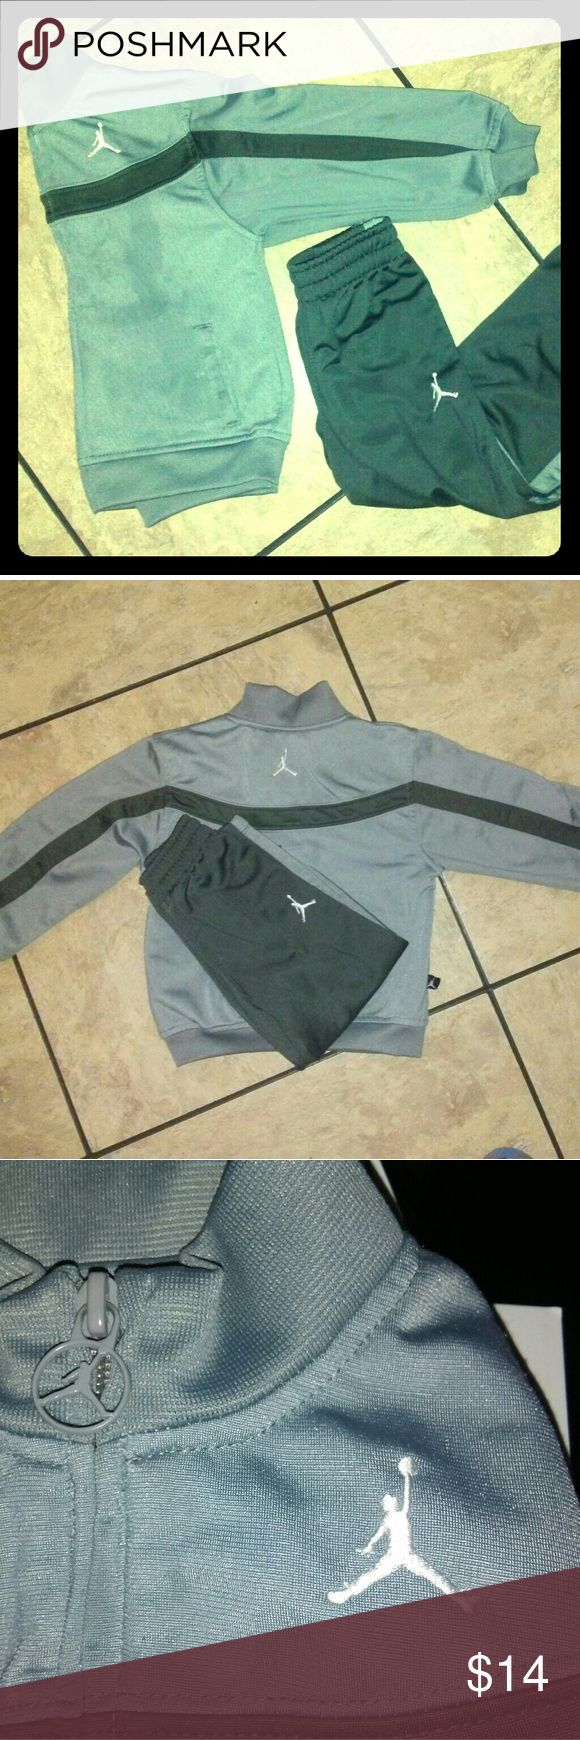 Kids' Jordan Sweat suit, 24 months Great used condition. Some light pilling on the jacket as my son is short and wore the jacket more than the pants. Runs slightly larger, imo, closer to a 2T. Jordan Matching Sets